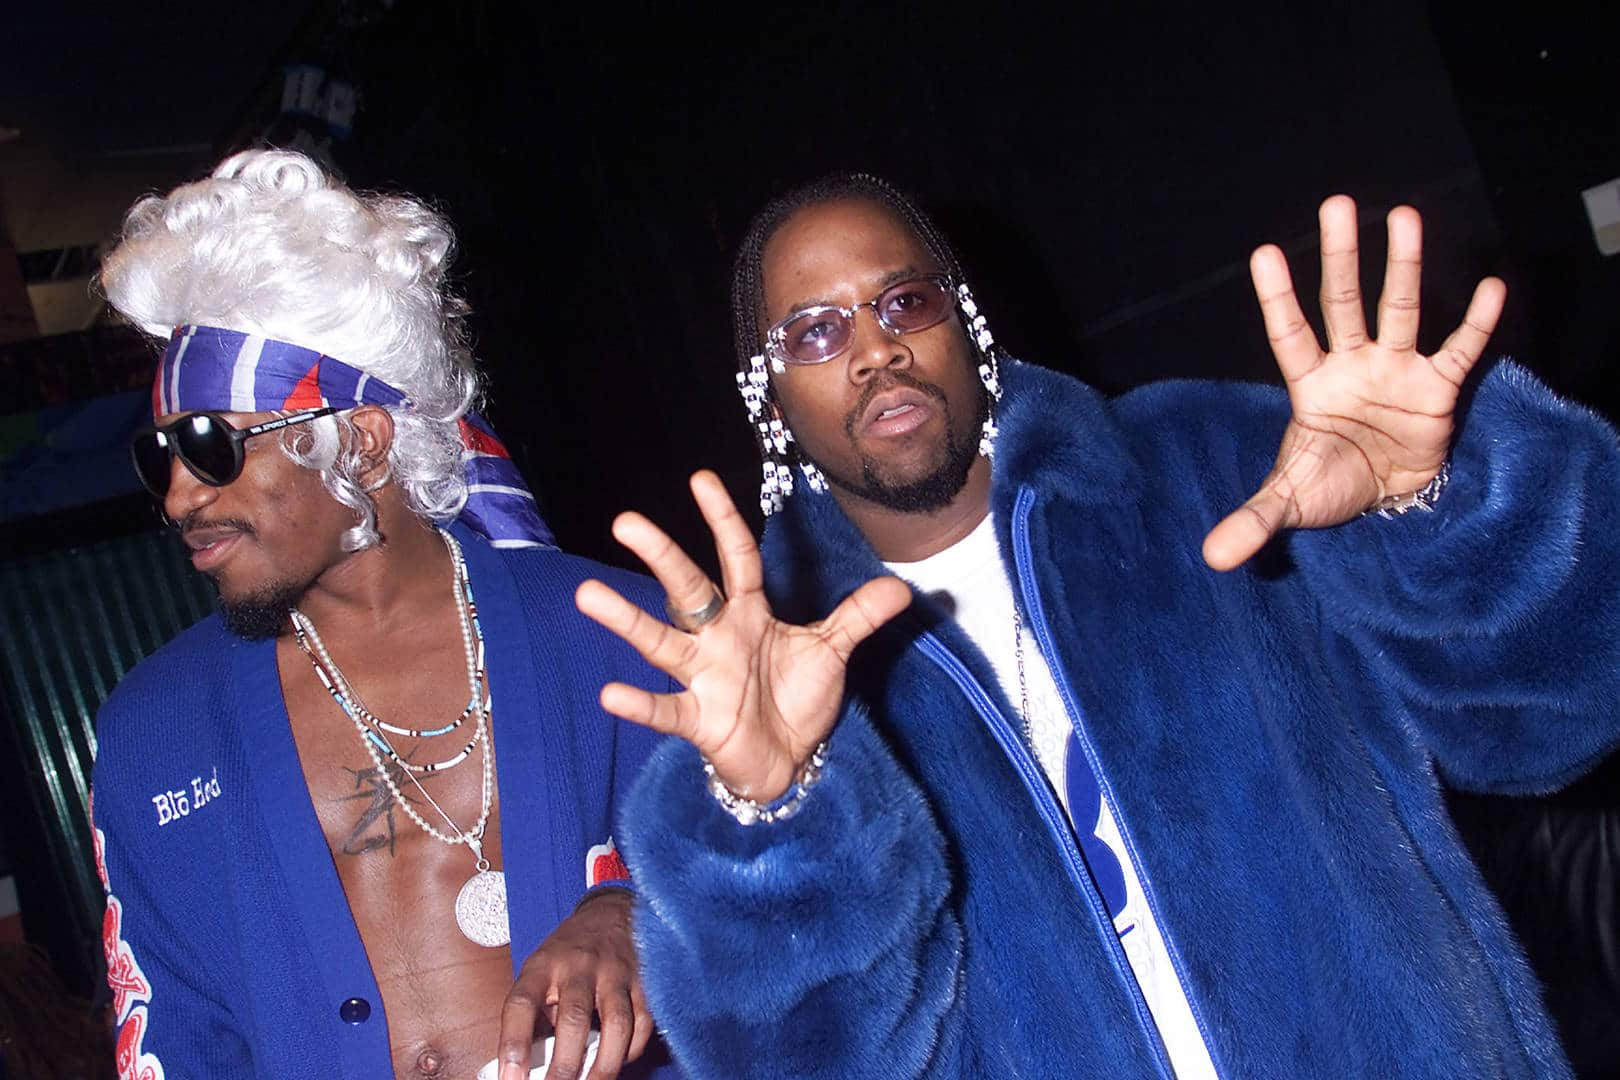 Mythical Detox albums: Outkast 10 The Hard Way